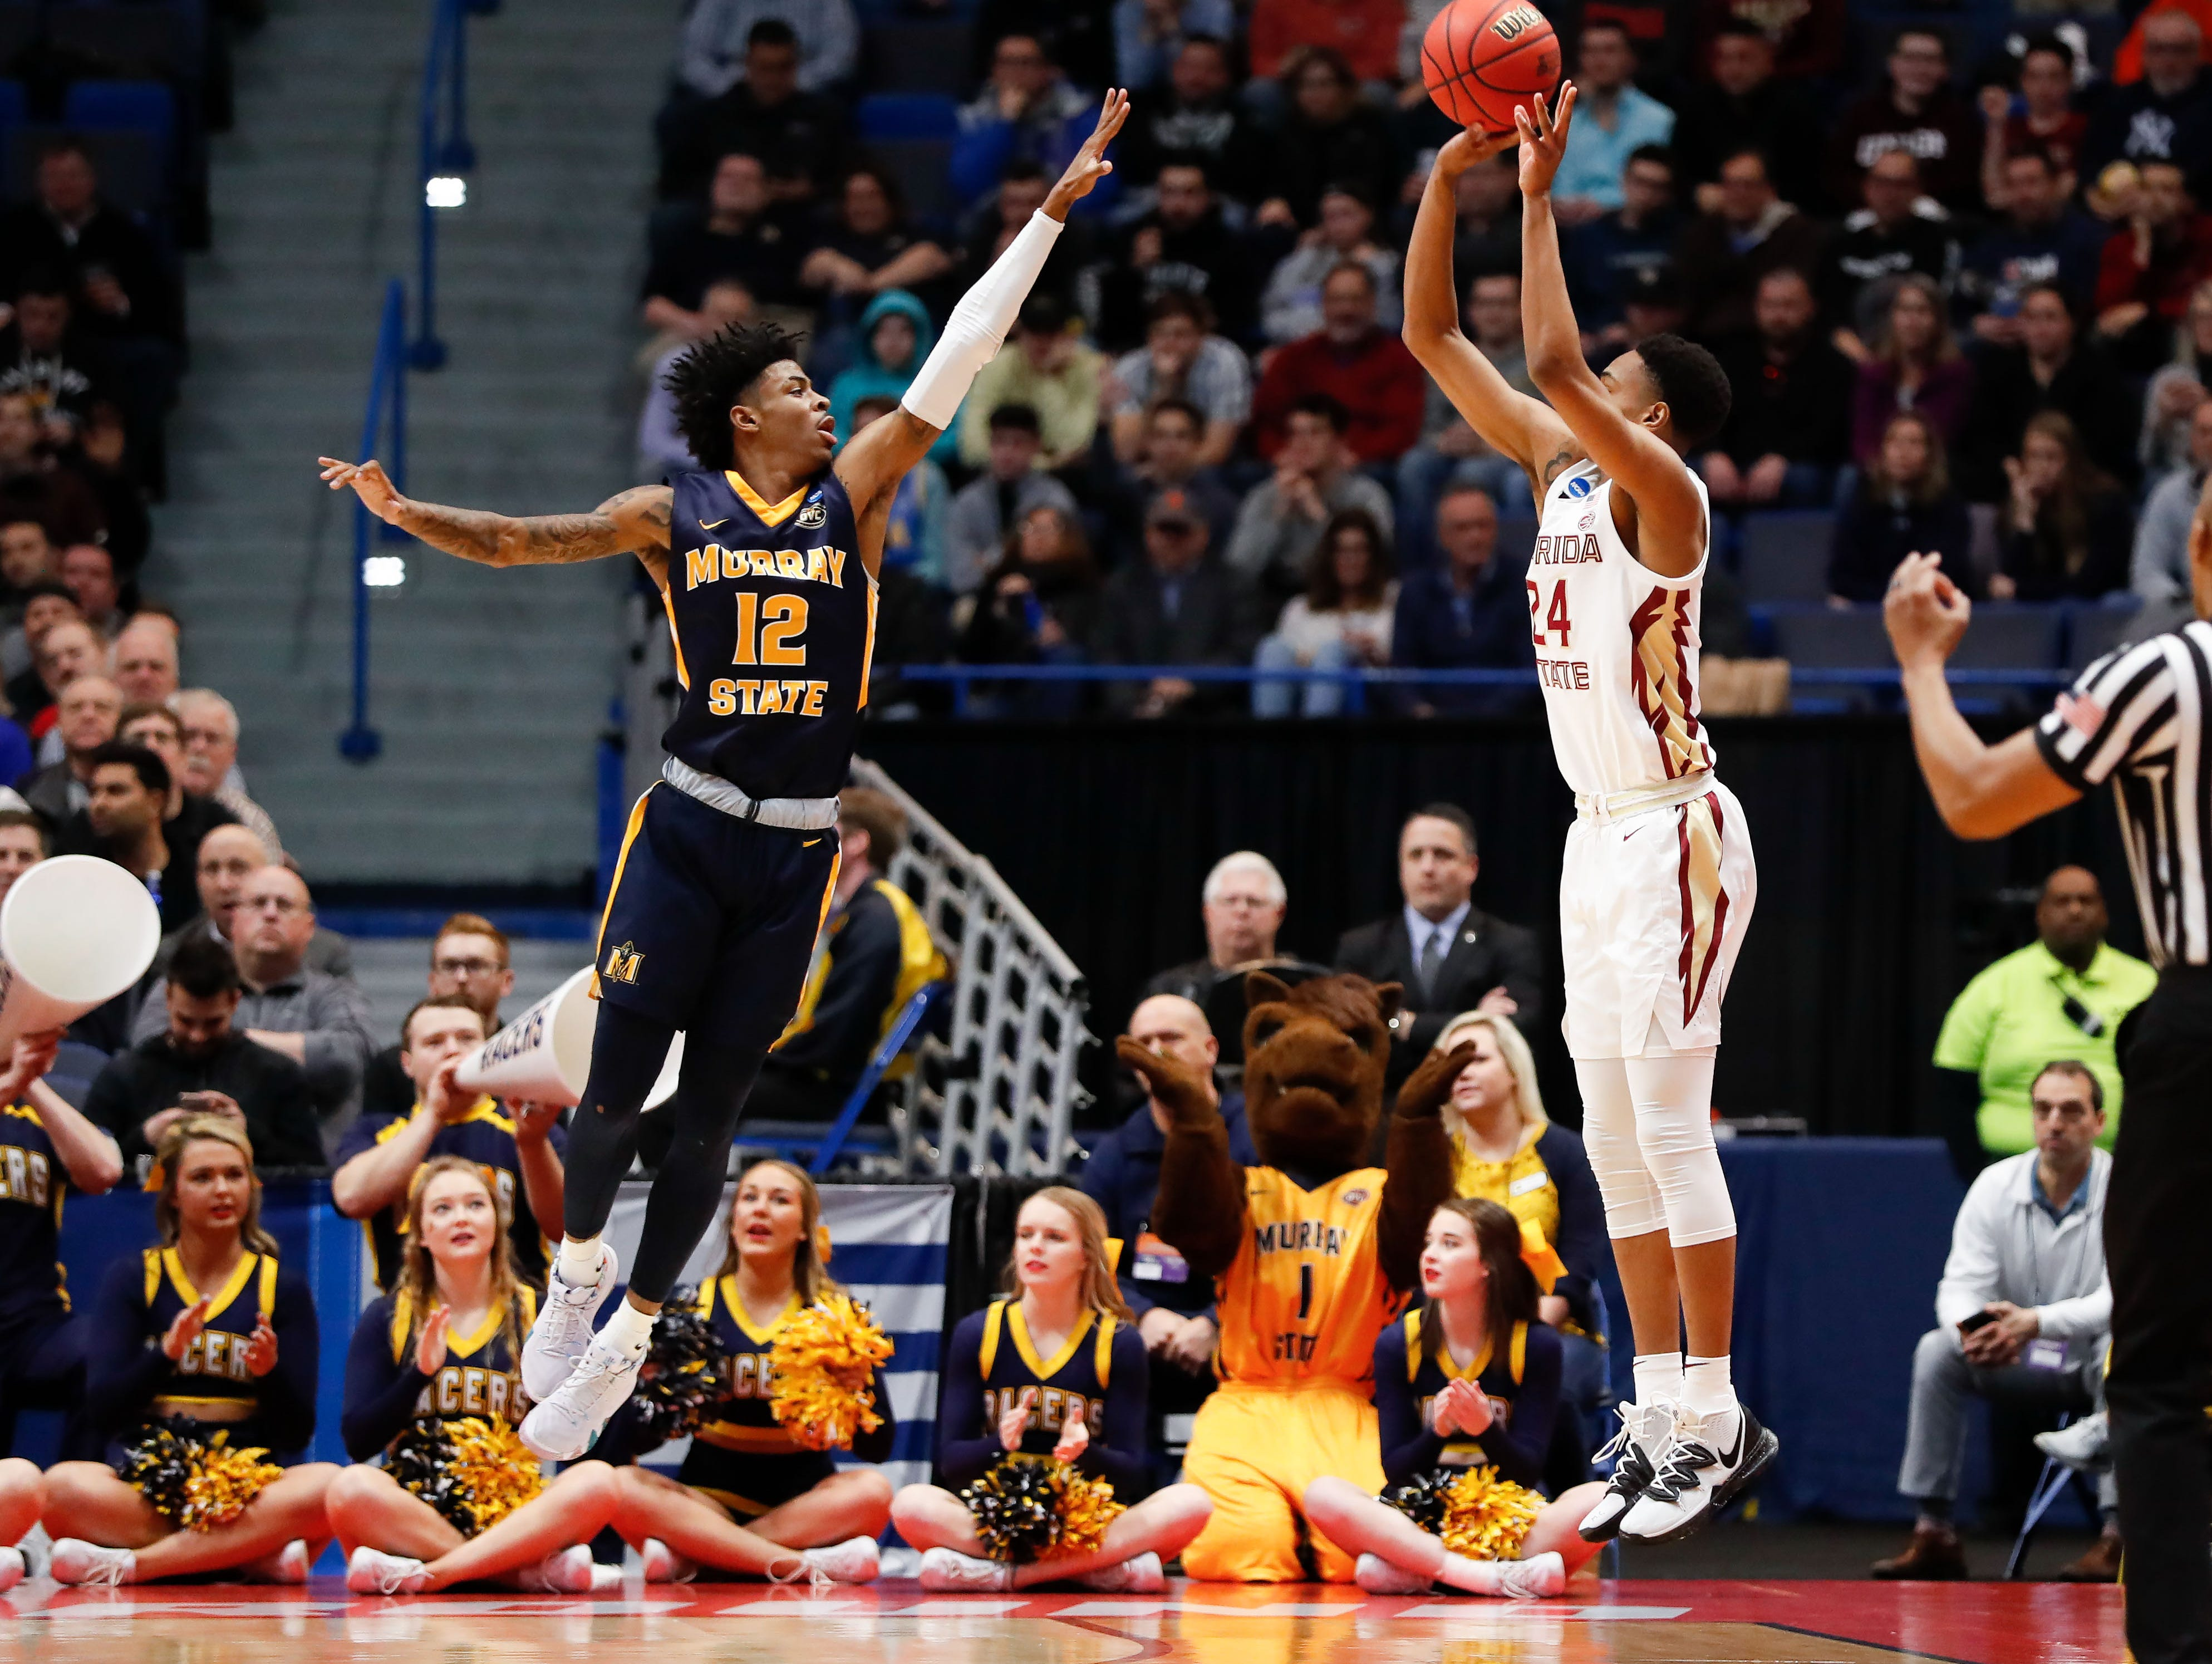 Mar 23, 2019; Hartford, CT, USA; Florida State Seminoles guard Devin Vassell (24) attempts a three point basket over Murray State Racers guard Ja Morant (12) during the first half of a game in the second round of the 2019 NCAA Tournament at XL Center. Mandatory Credit: David Butler II-USA TODAY Sports